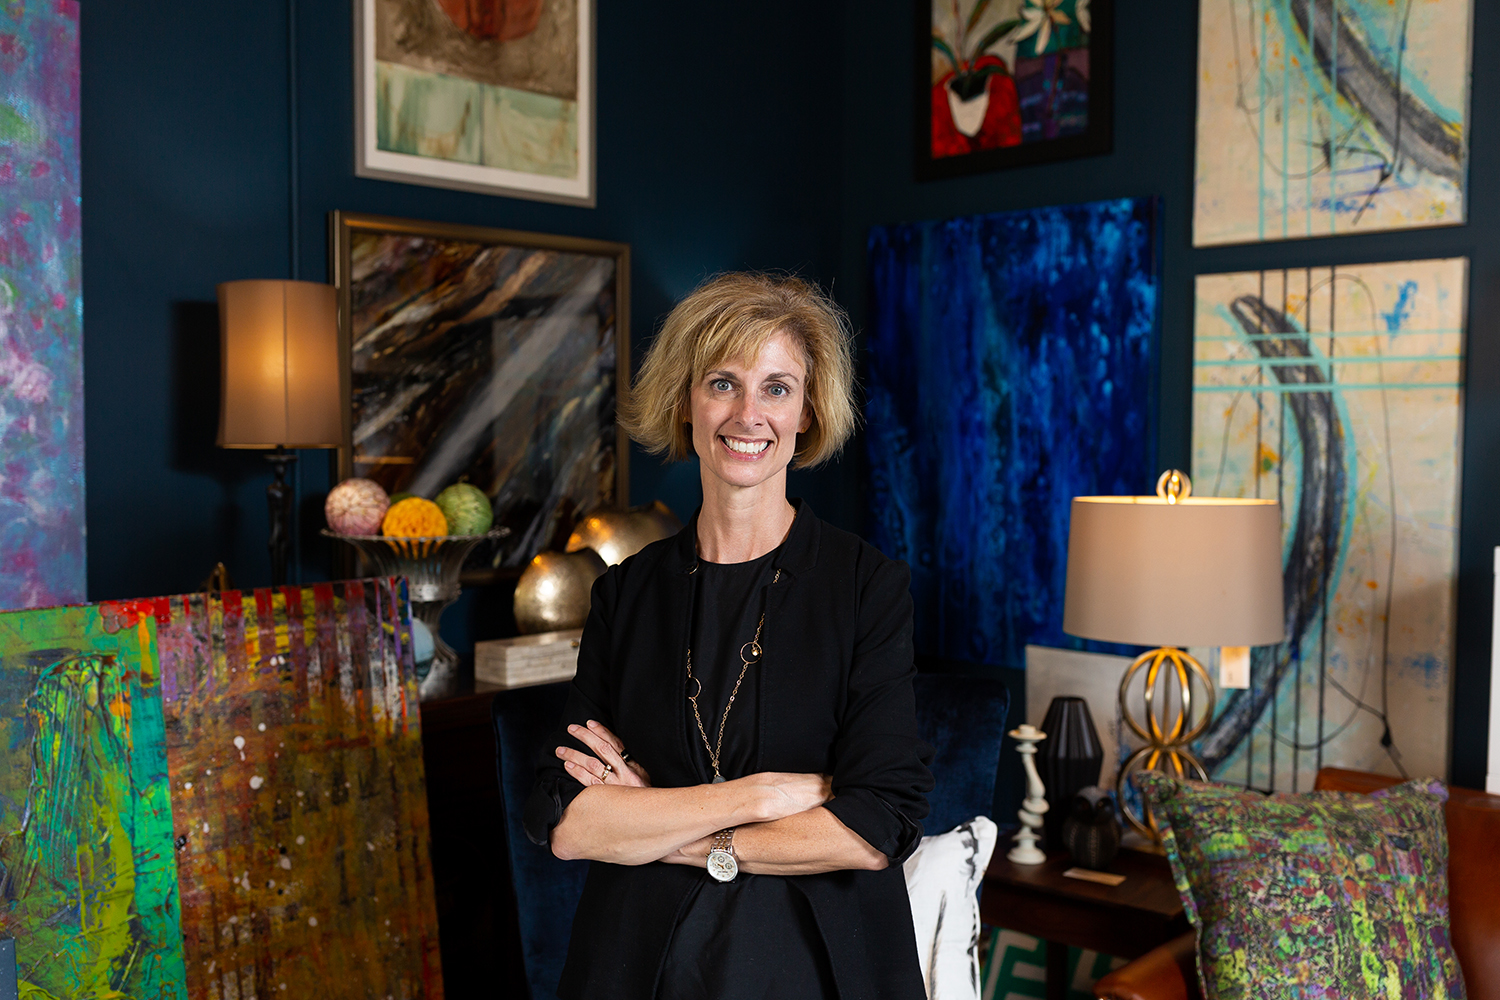 Jan Finlayson, the owner of Luxe Interiors stands in her shop in Iowa City on Thursday, Sept. 6, 2018.